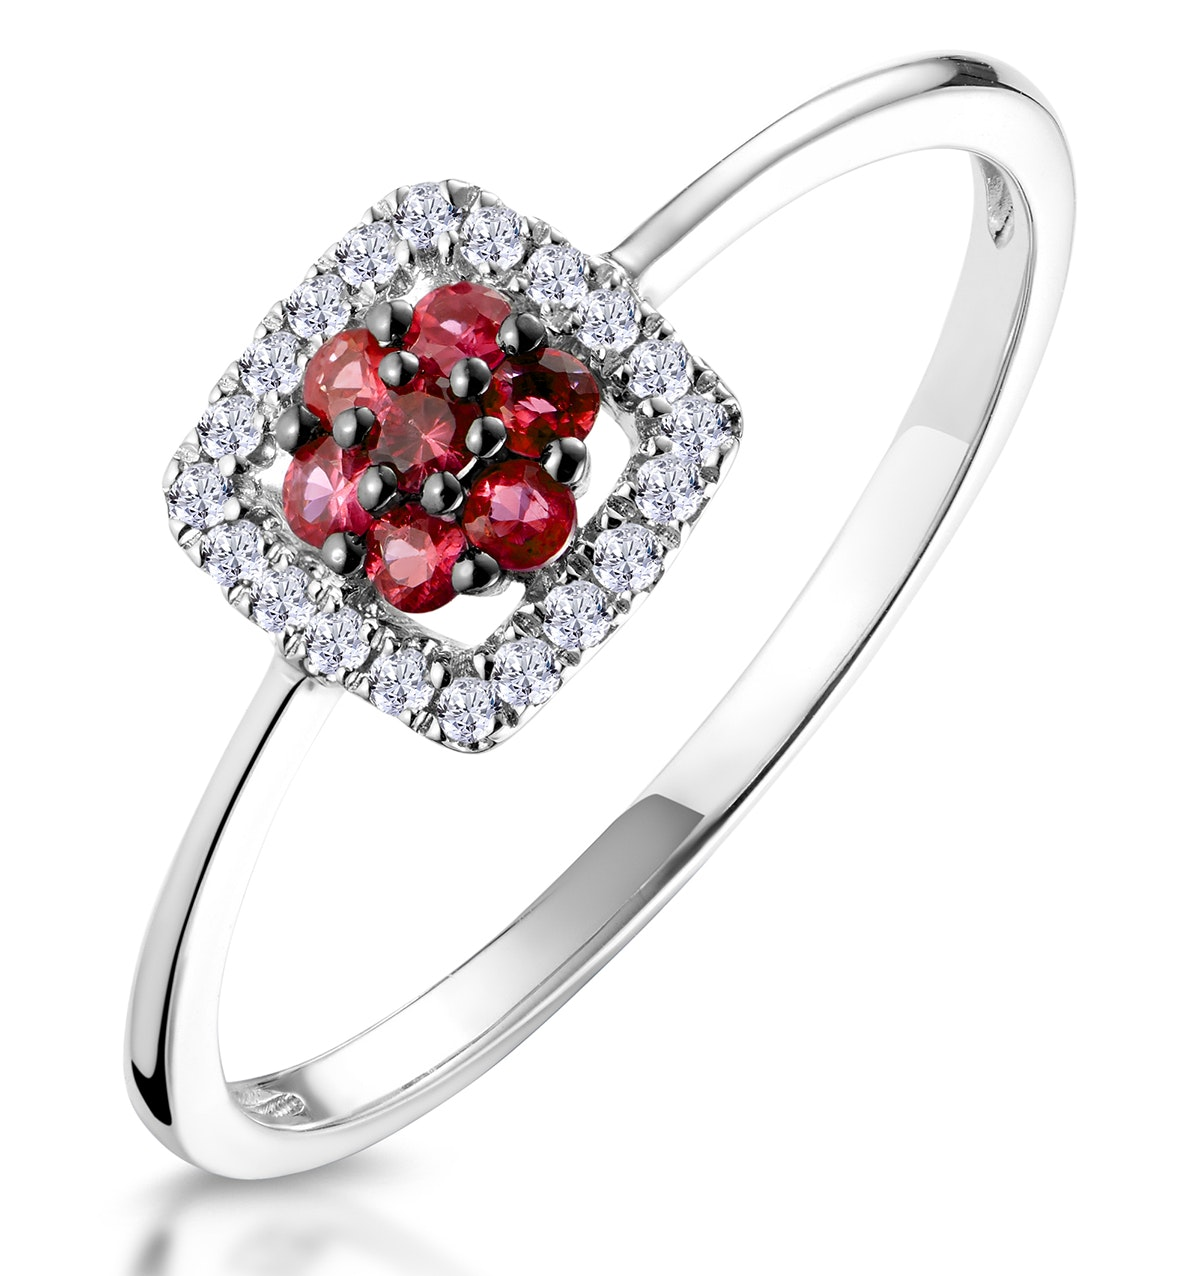 0.15ct Ruby and Diamond Ring in 9K White Gold - Stellato Collection